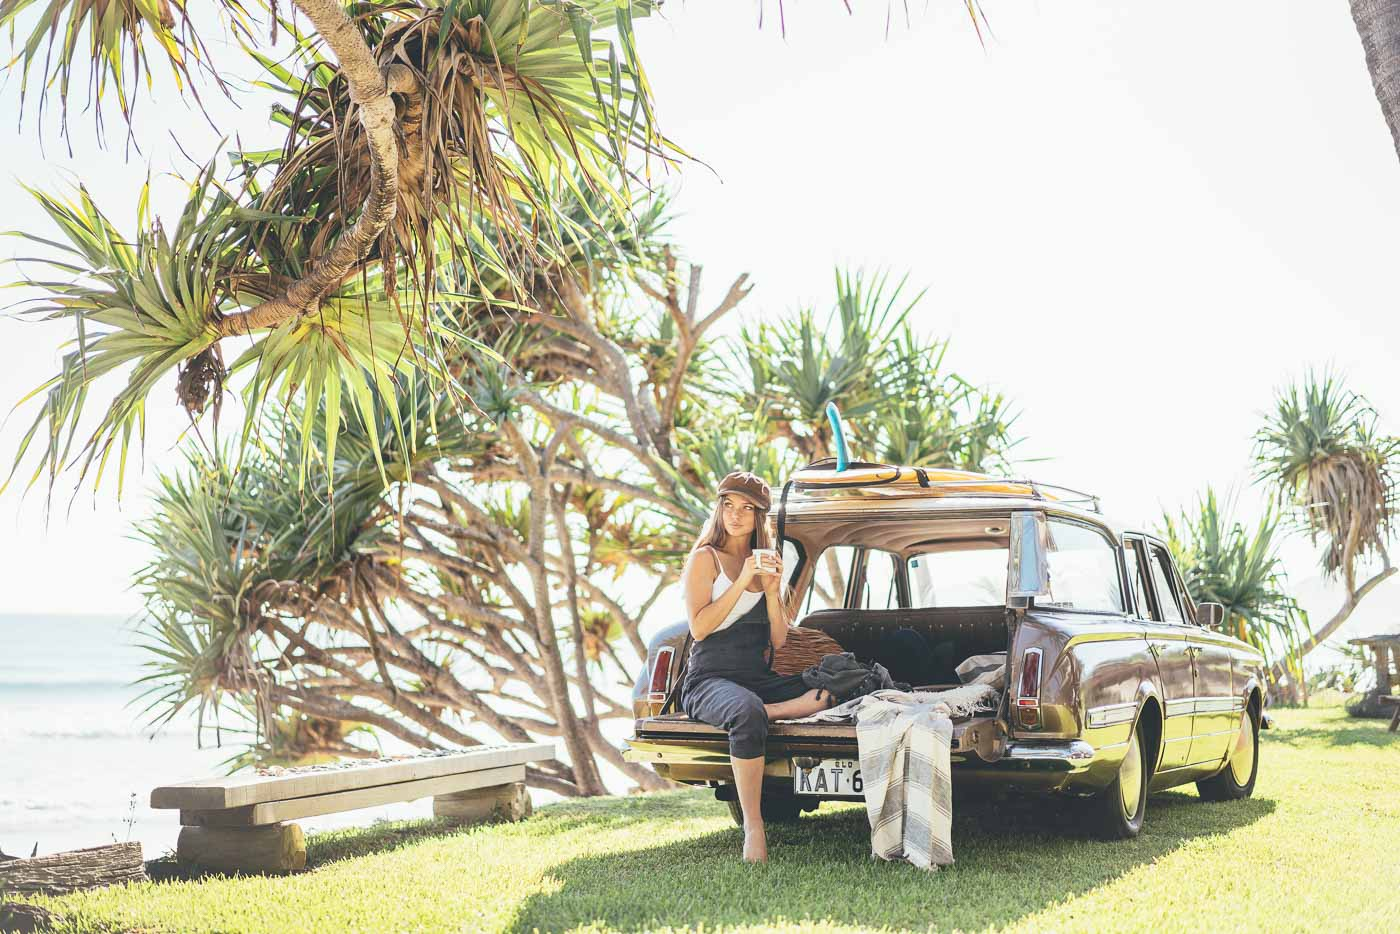 Girl sitting on the boot of the vintage car drinking coffee